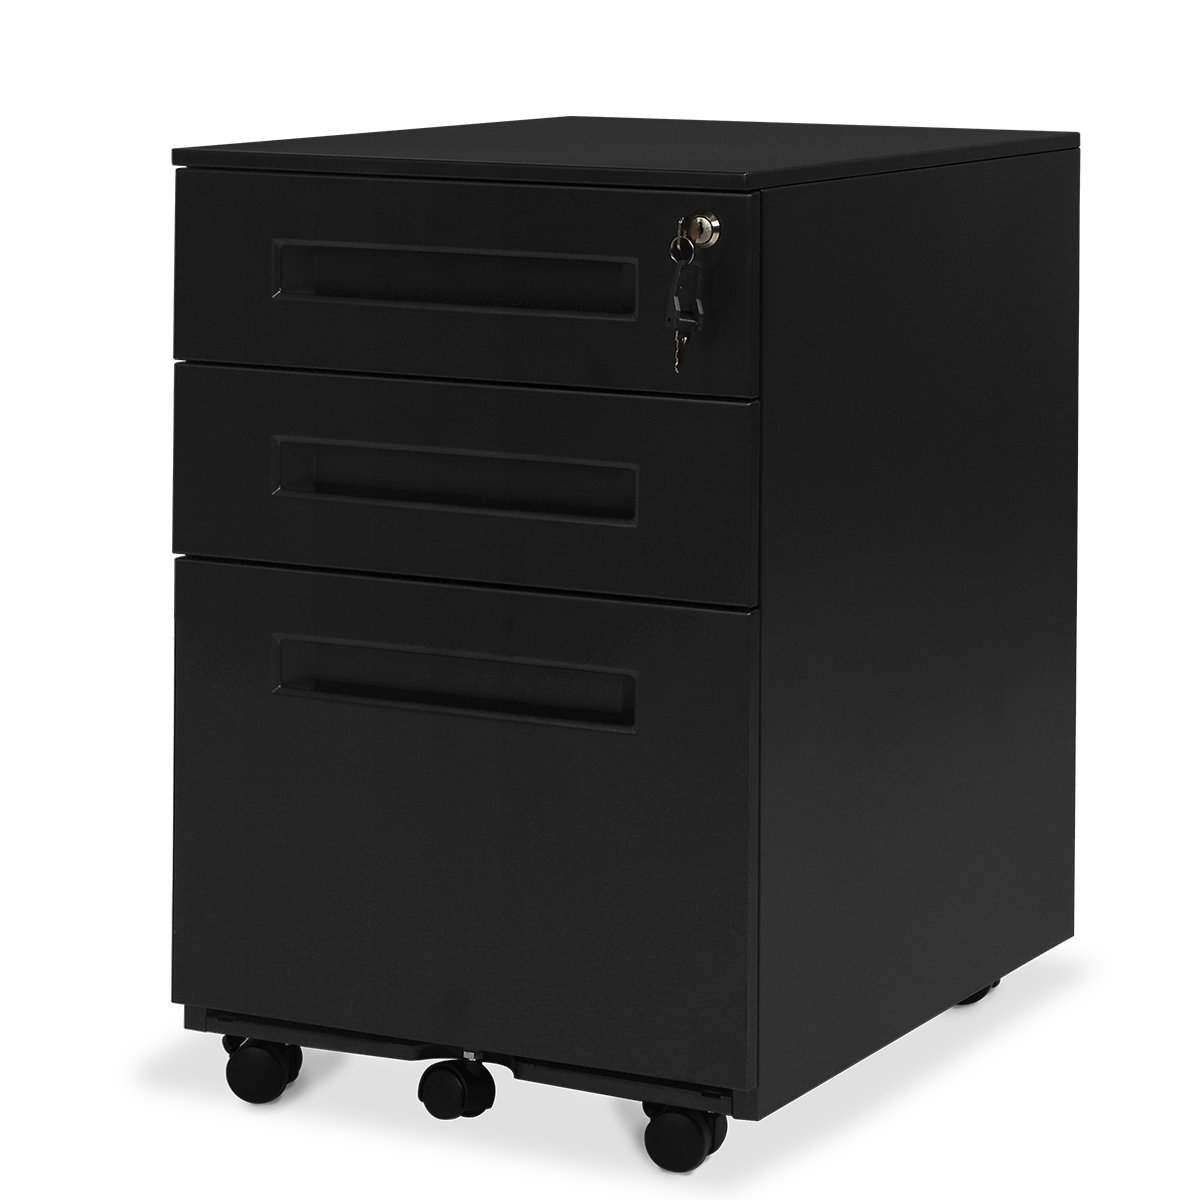 DEVAISE Mobile 3 Drawer Filing Cabinet/Pedestal for A4 ; All-Steel, Lockable, 60cm H, Black